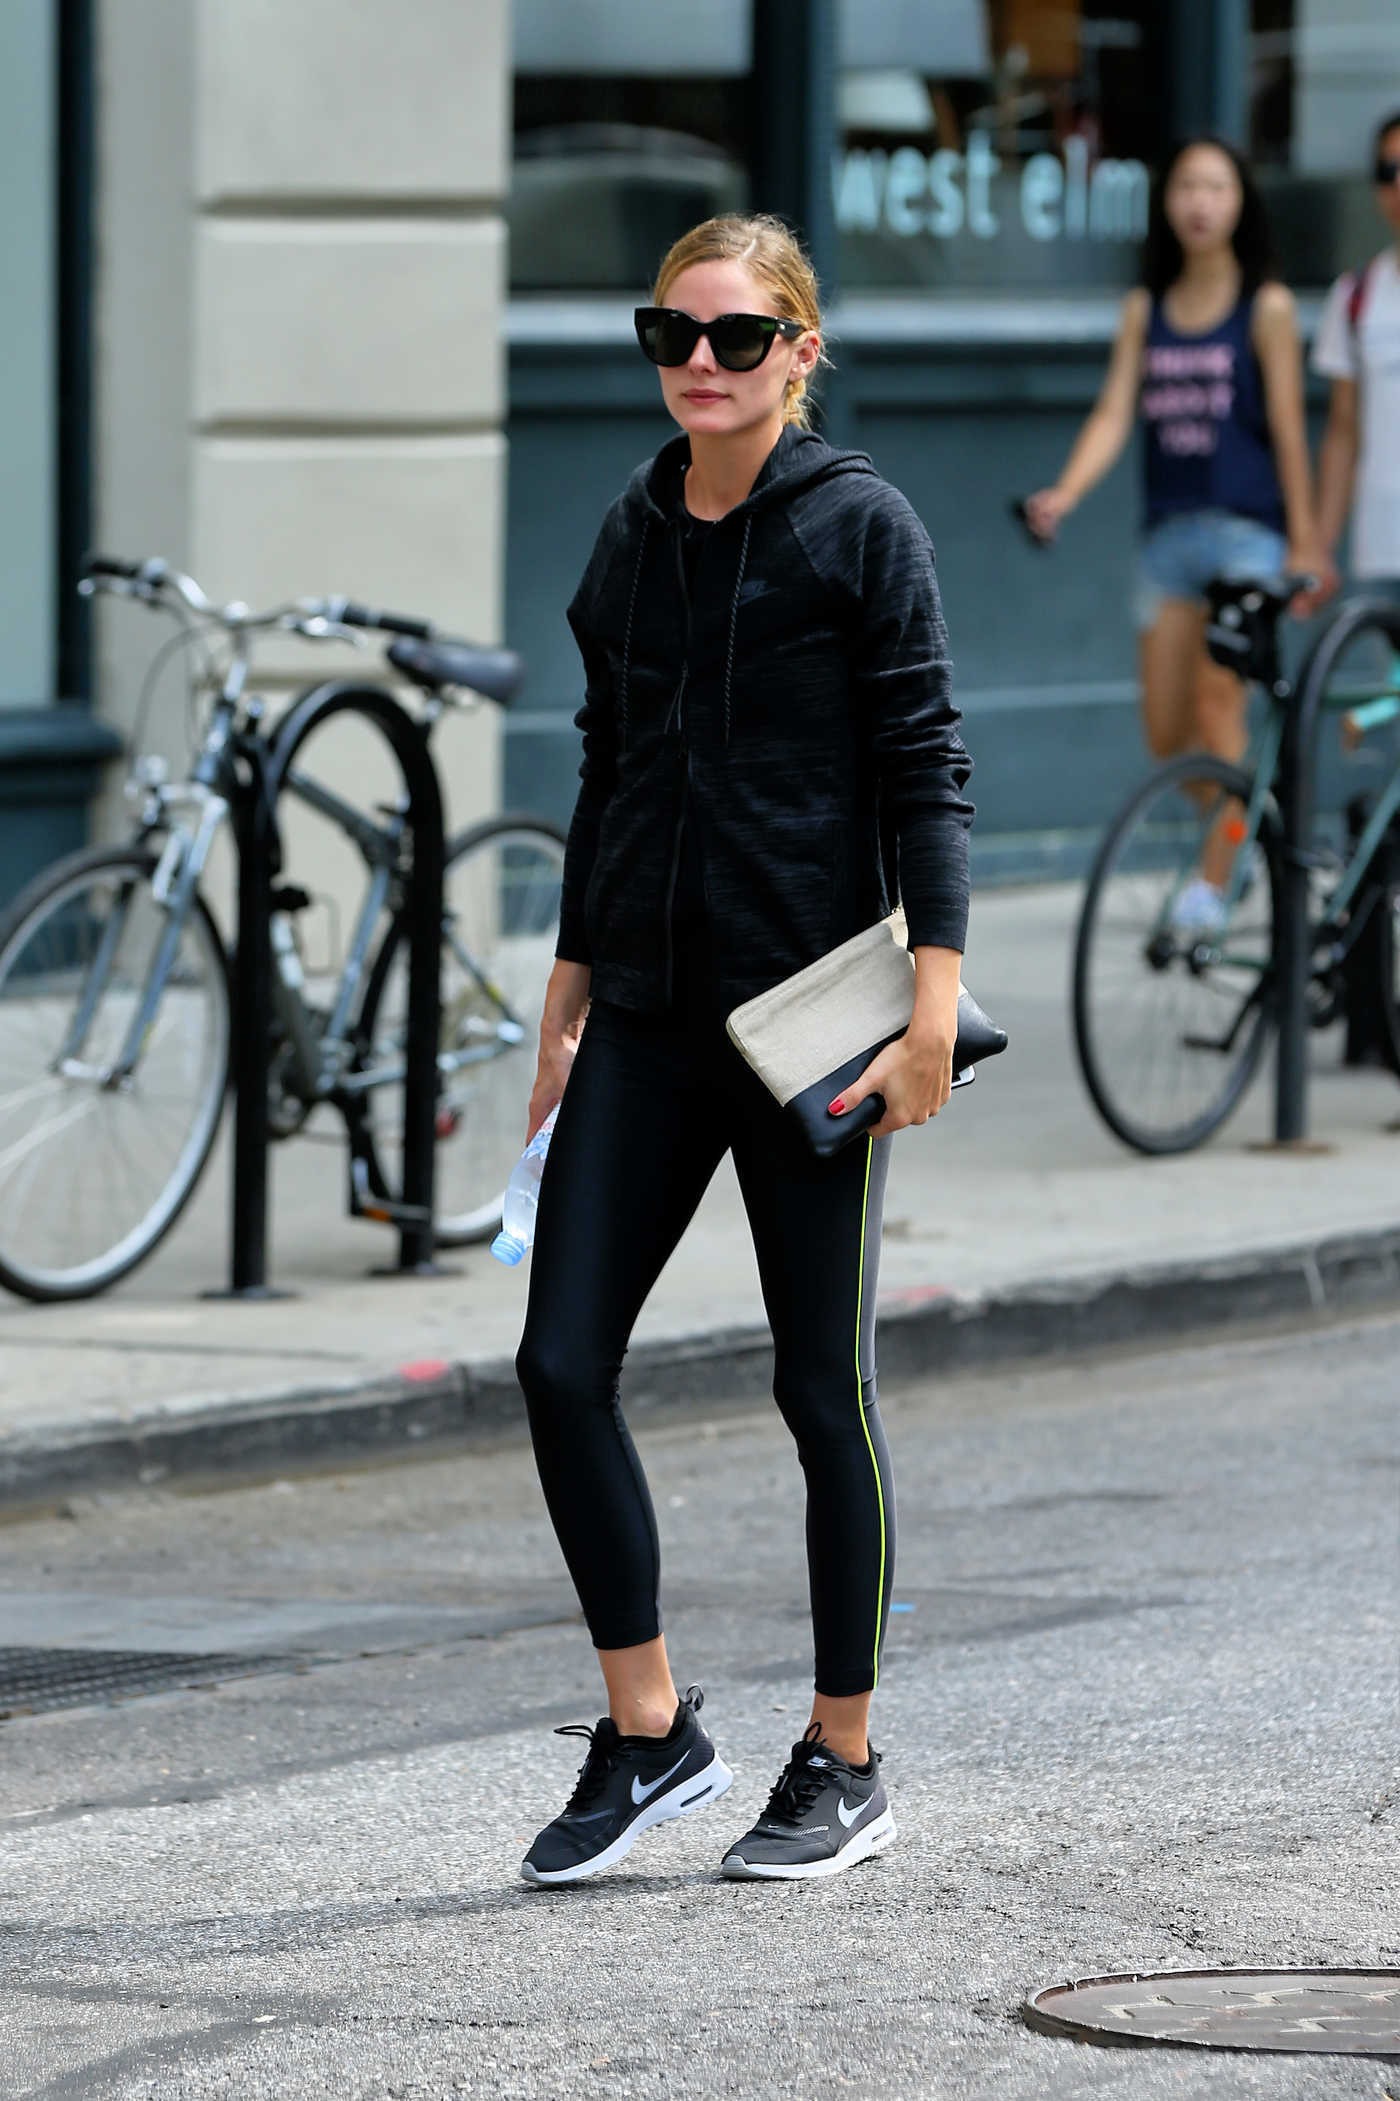 Olivia Palermo Walks to the Gym in New York City 08/16/2016